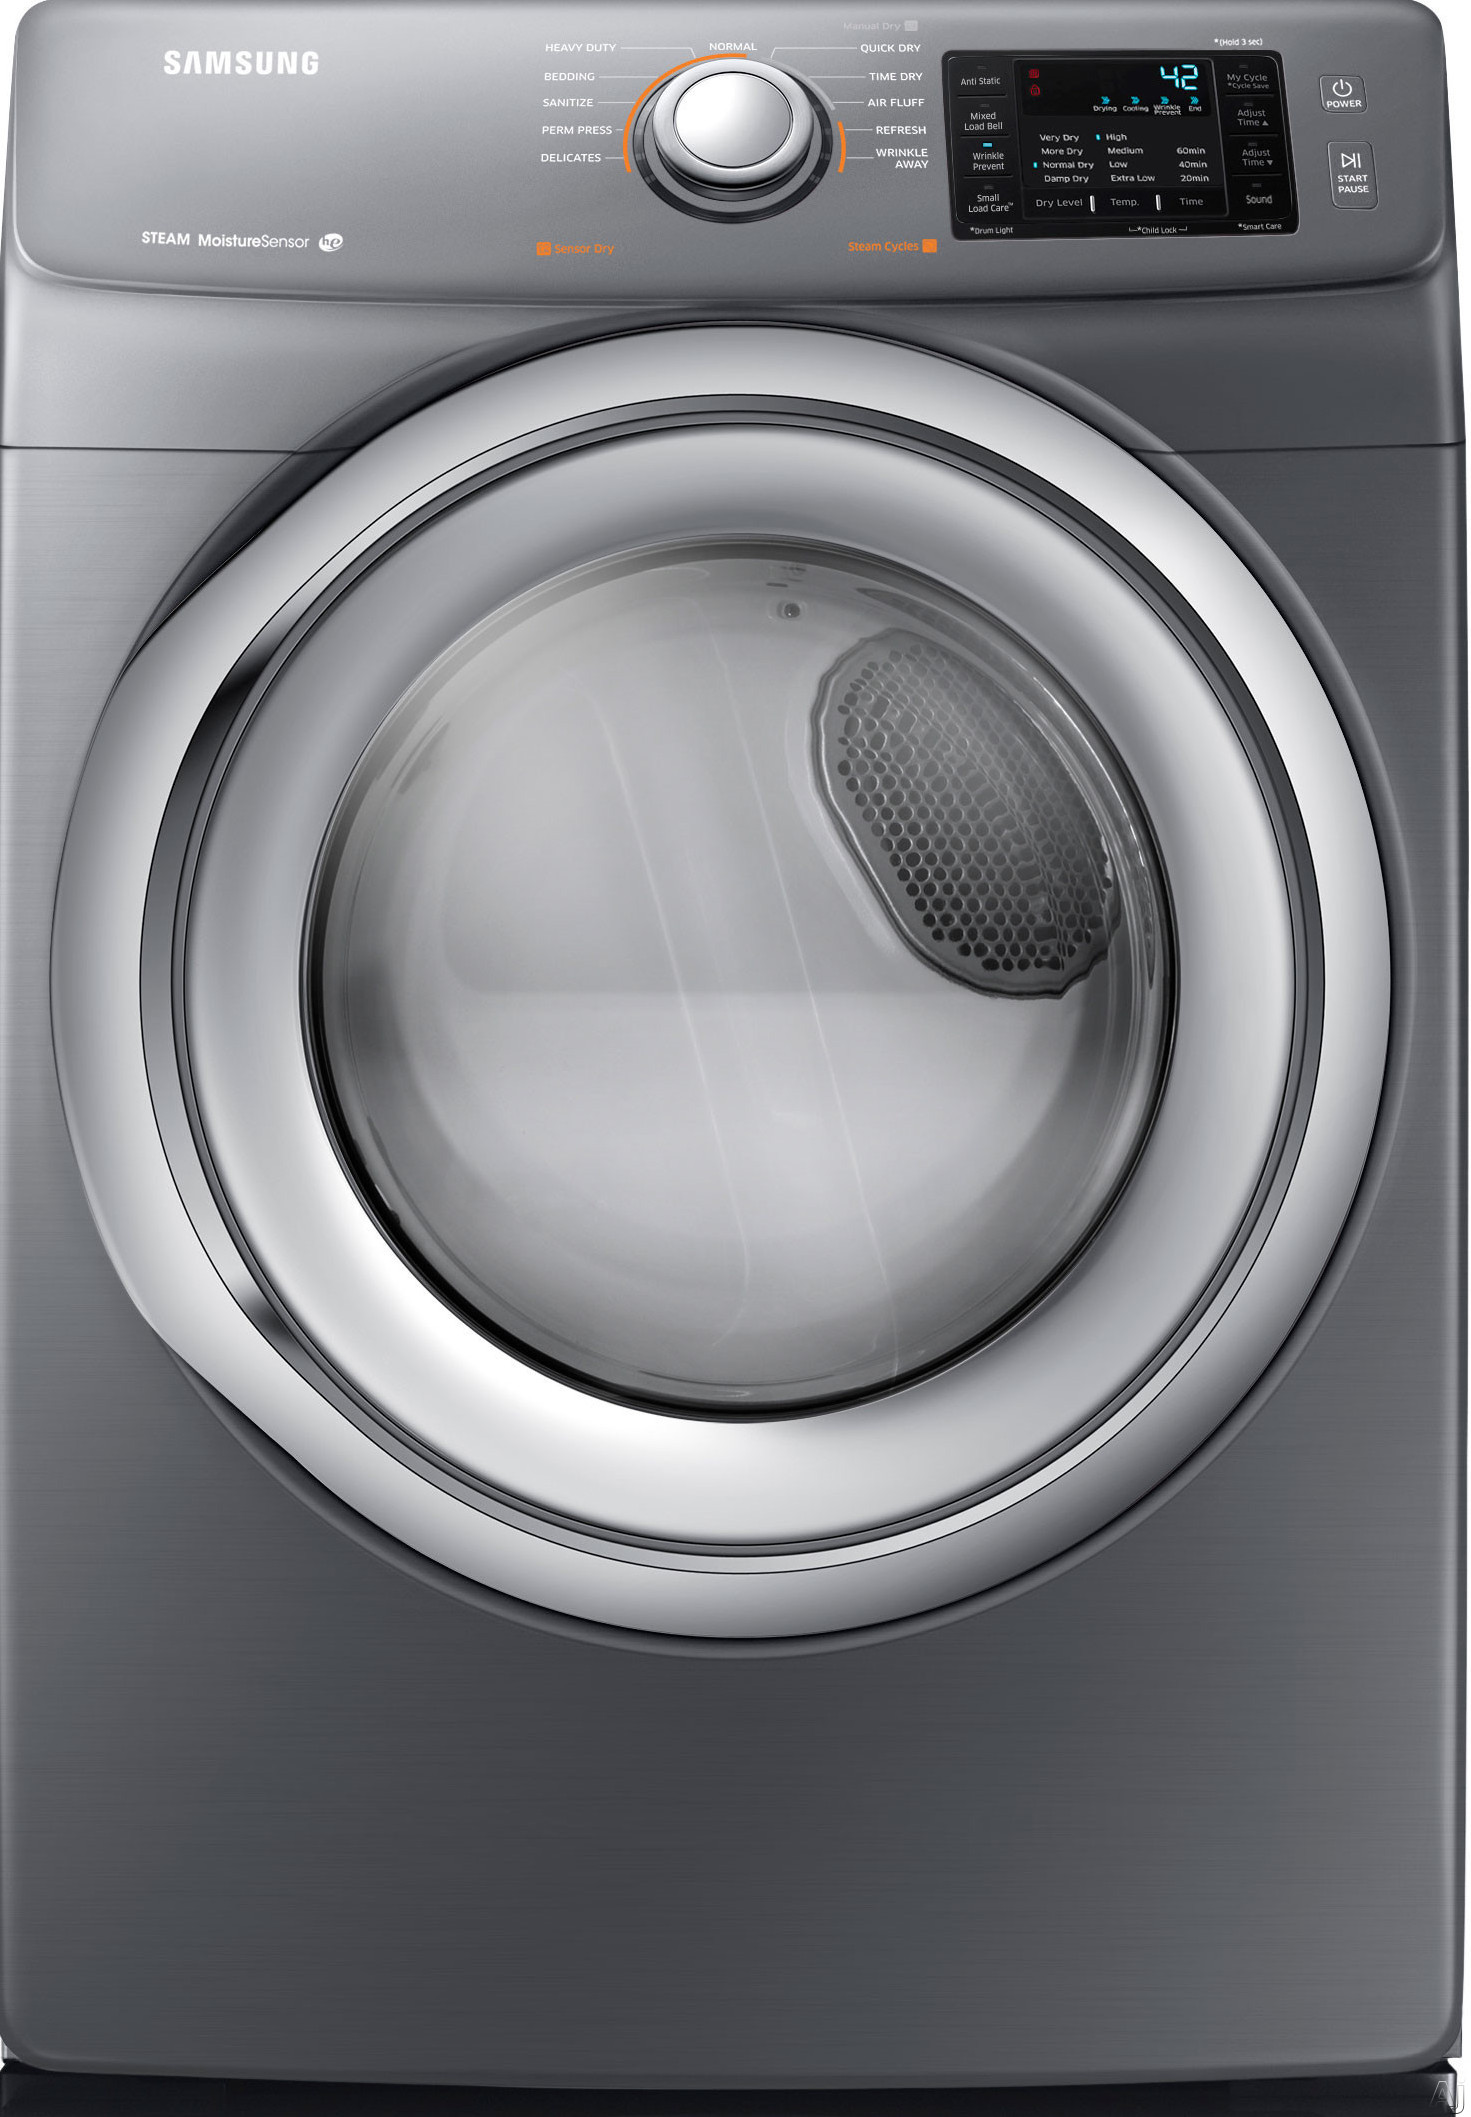 Samsung DV42H5200GP 27 Inch Gas Dryer with Steam, Wrinkle Prevent, Sensor Dry, 11 Dry Cycles, 4 Temperature Settings, Smart Care, Lint Filter Indicator, Reversible Door and 7.4 cu. ft. Capacity: Platinum DV42H5200GP